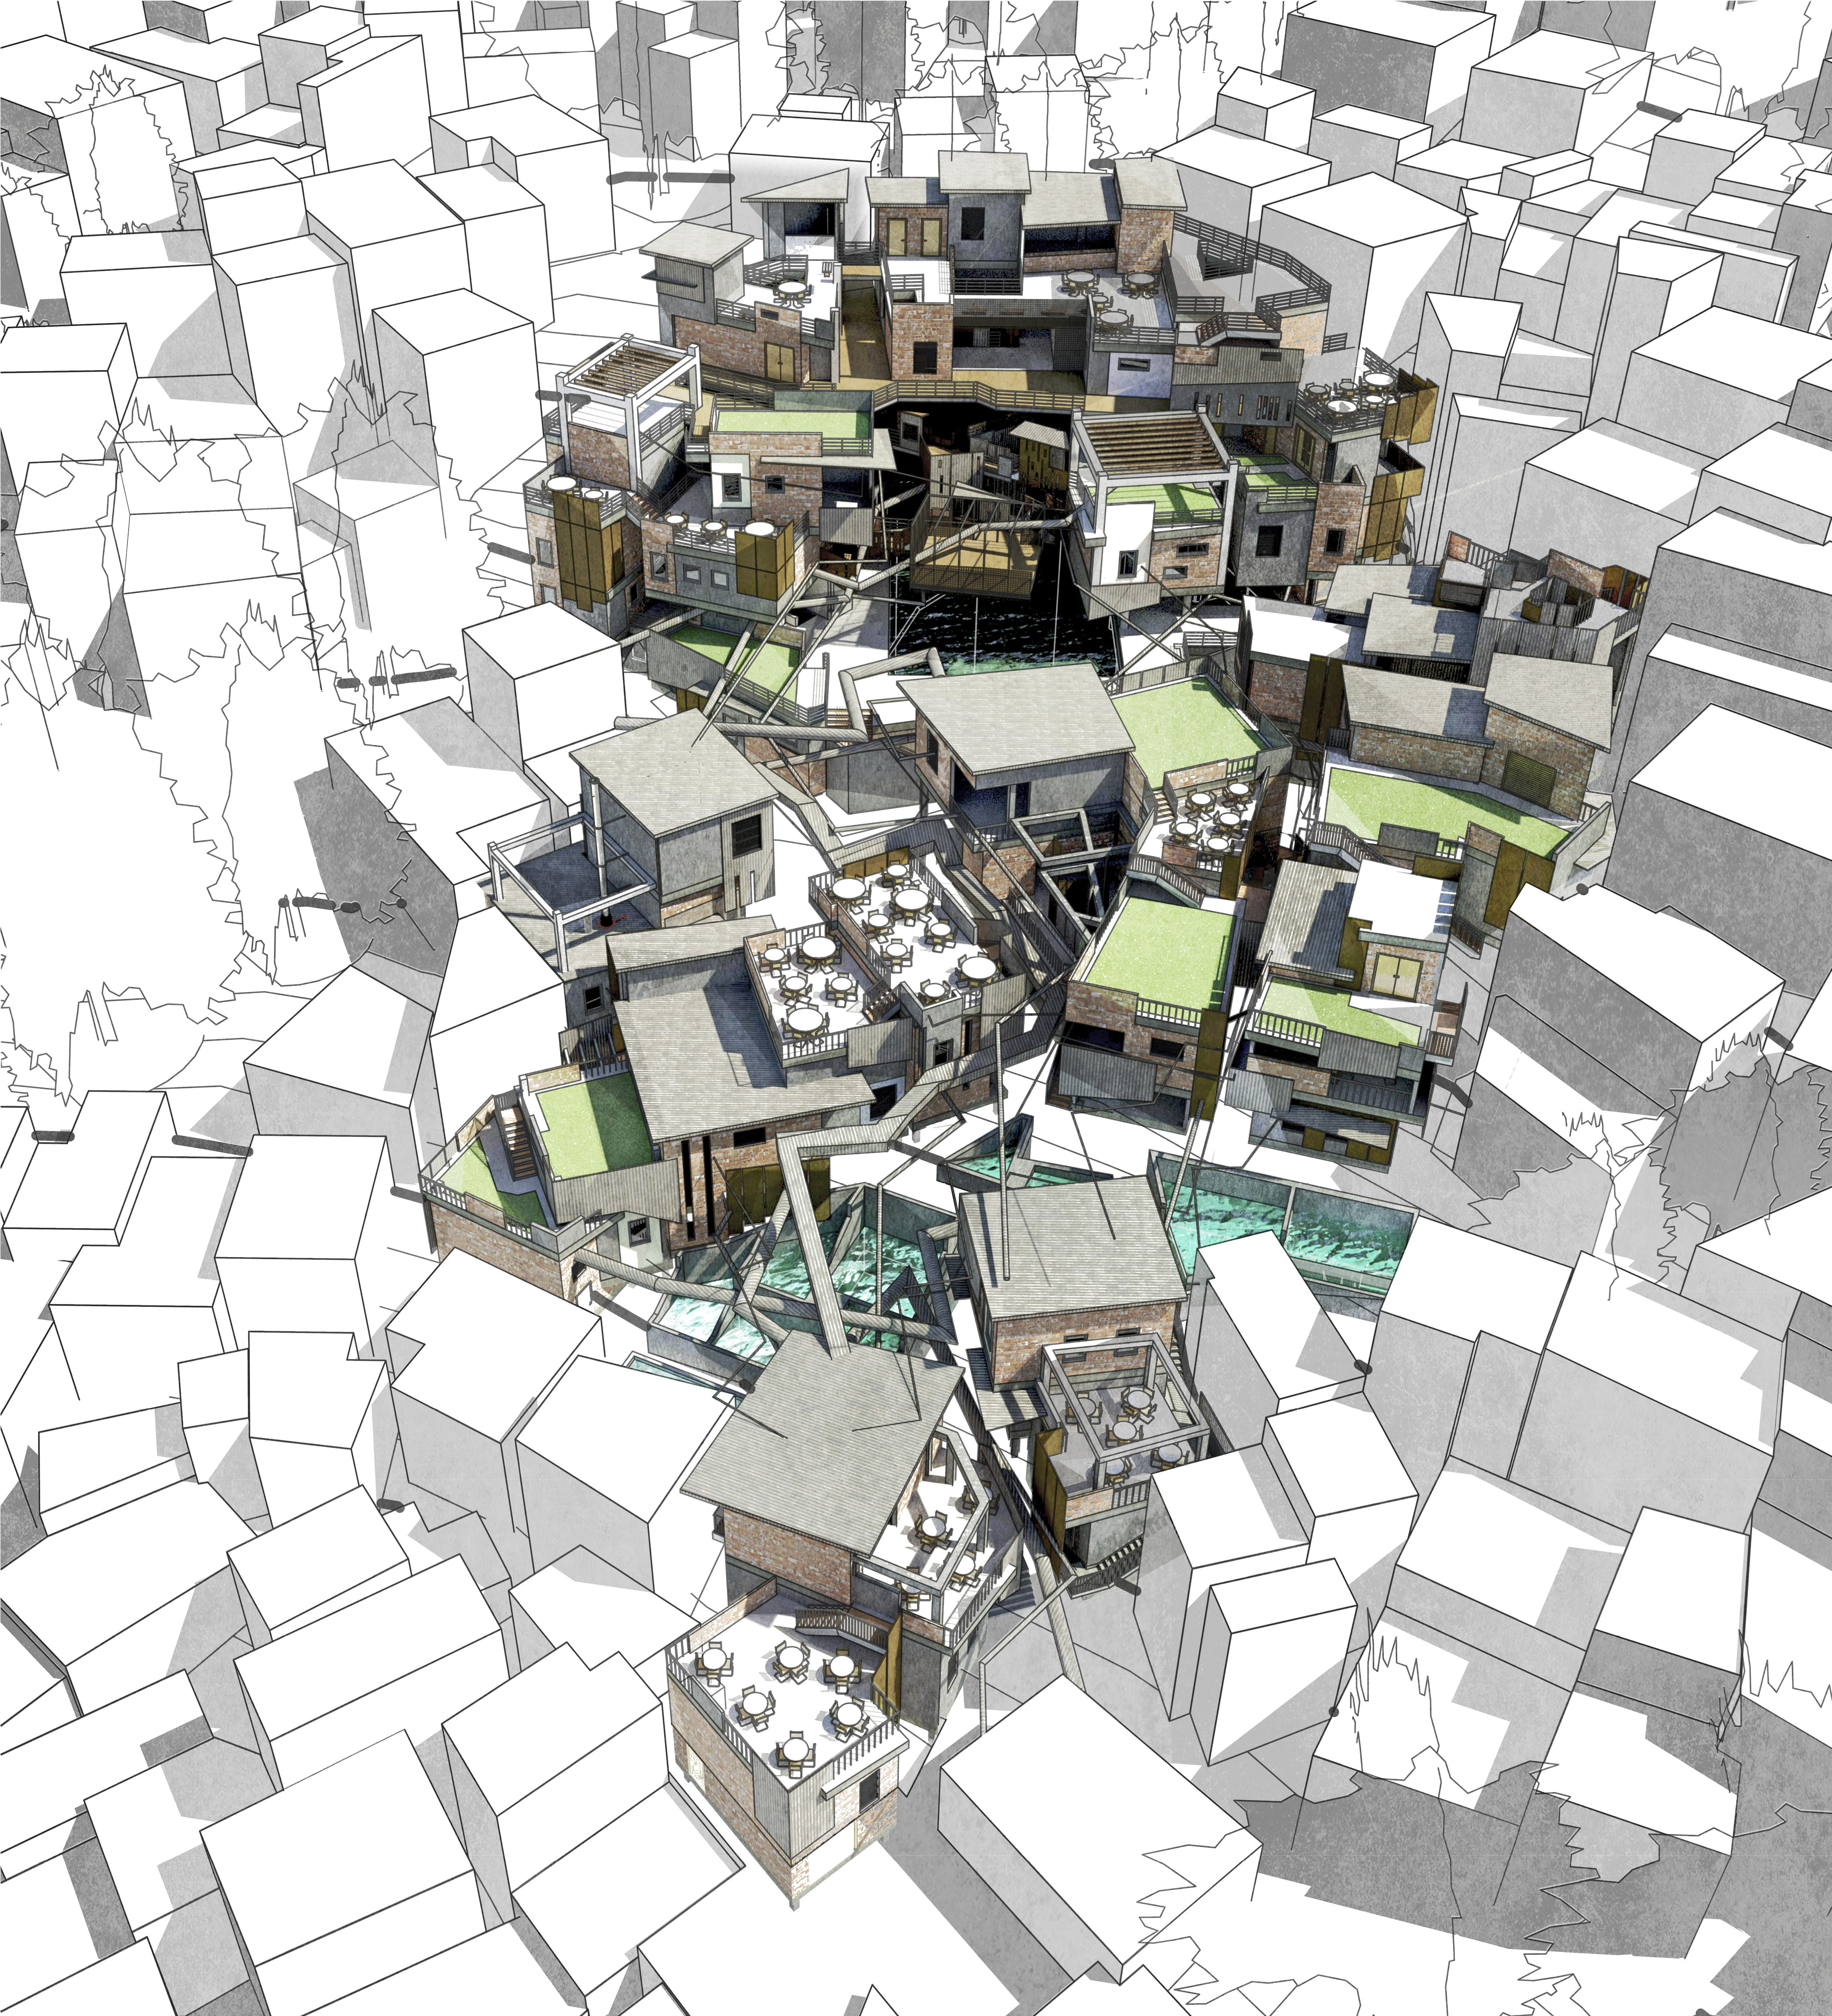 The proposal contextually integrates into the surrounding favela by respecting the existing fluid urban fabric and the chaotic treatment of materiality.